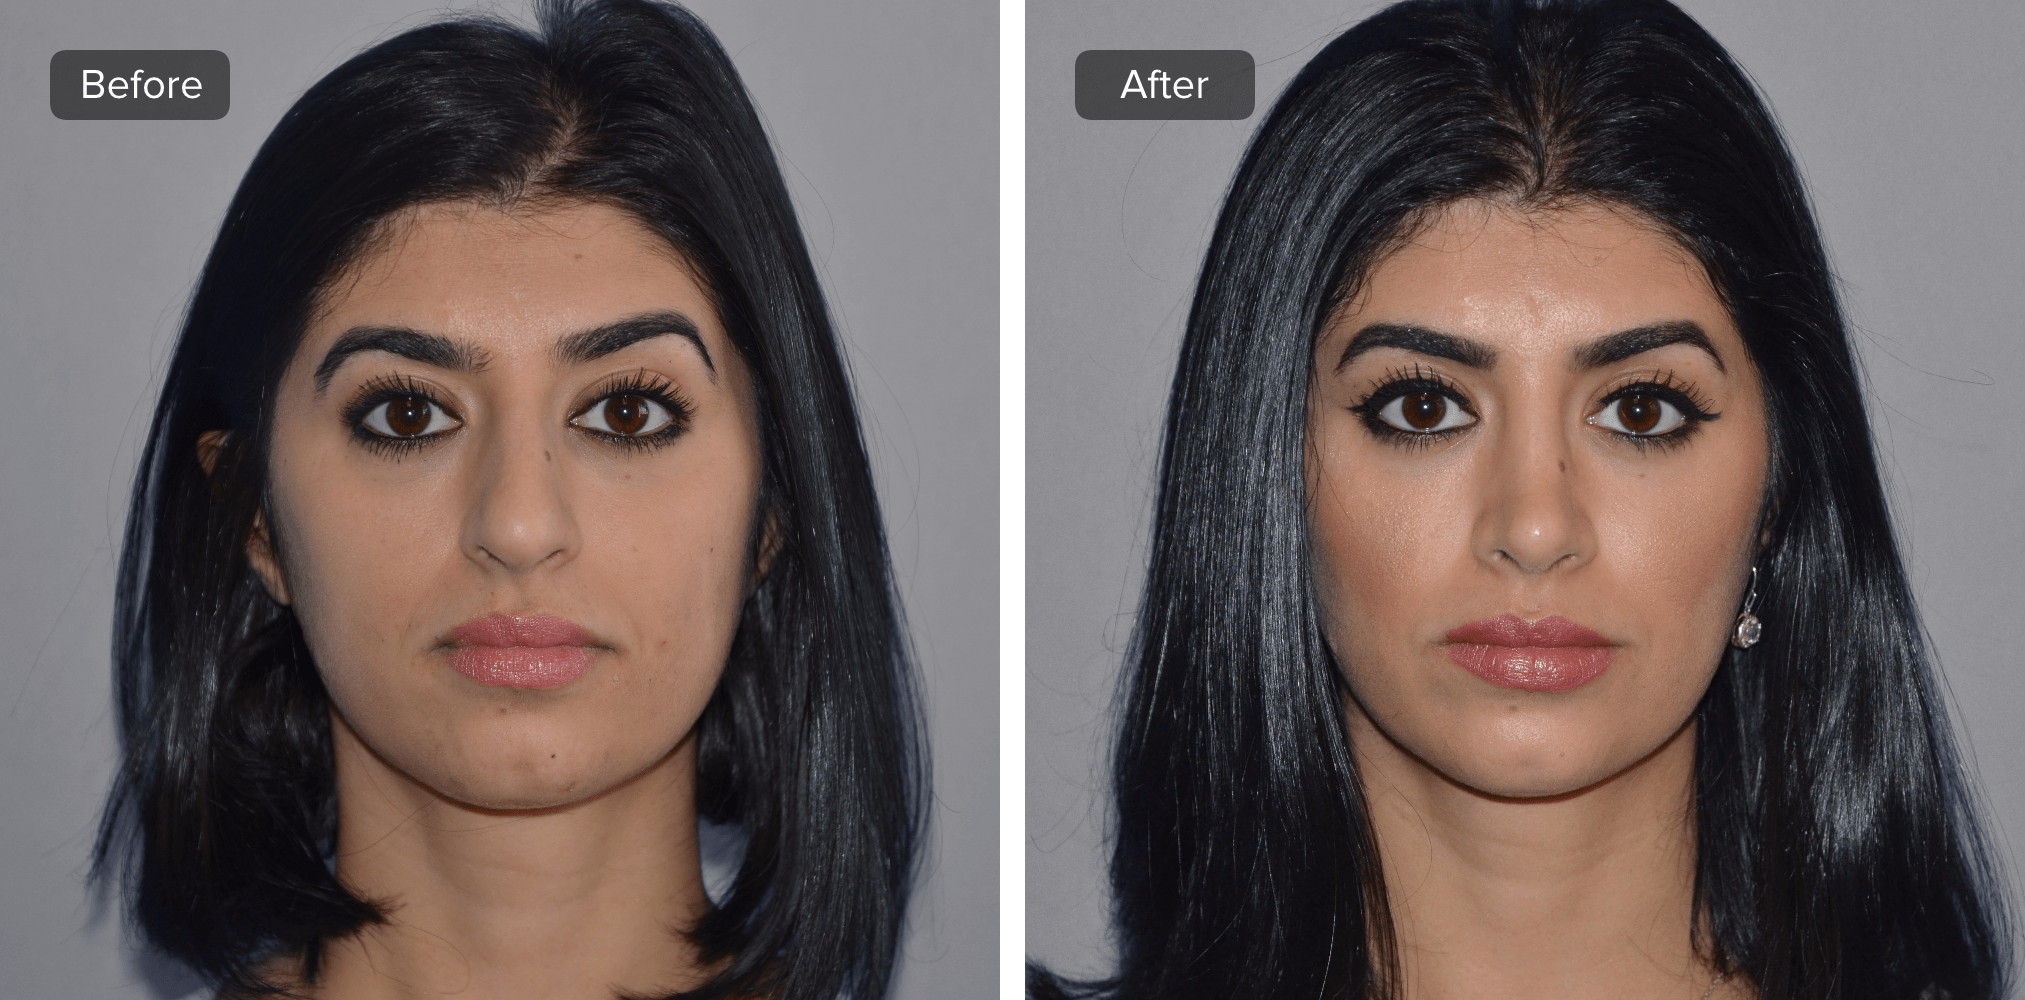 Recovery Time To Expect For A Rhinoplasty Rhinoplasty Rhinoplasty Recovery Aesthetic Dermatology